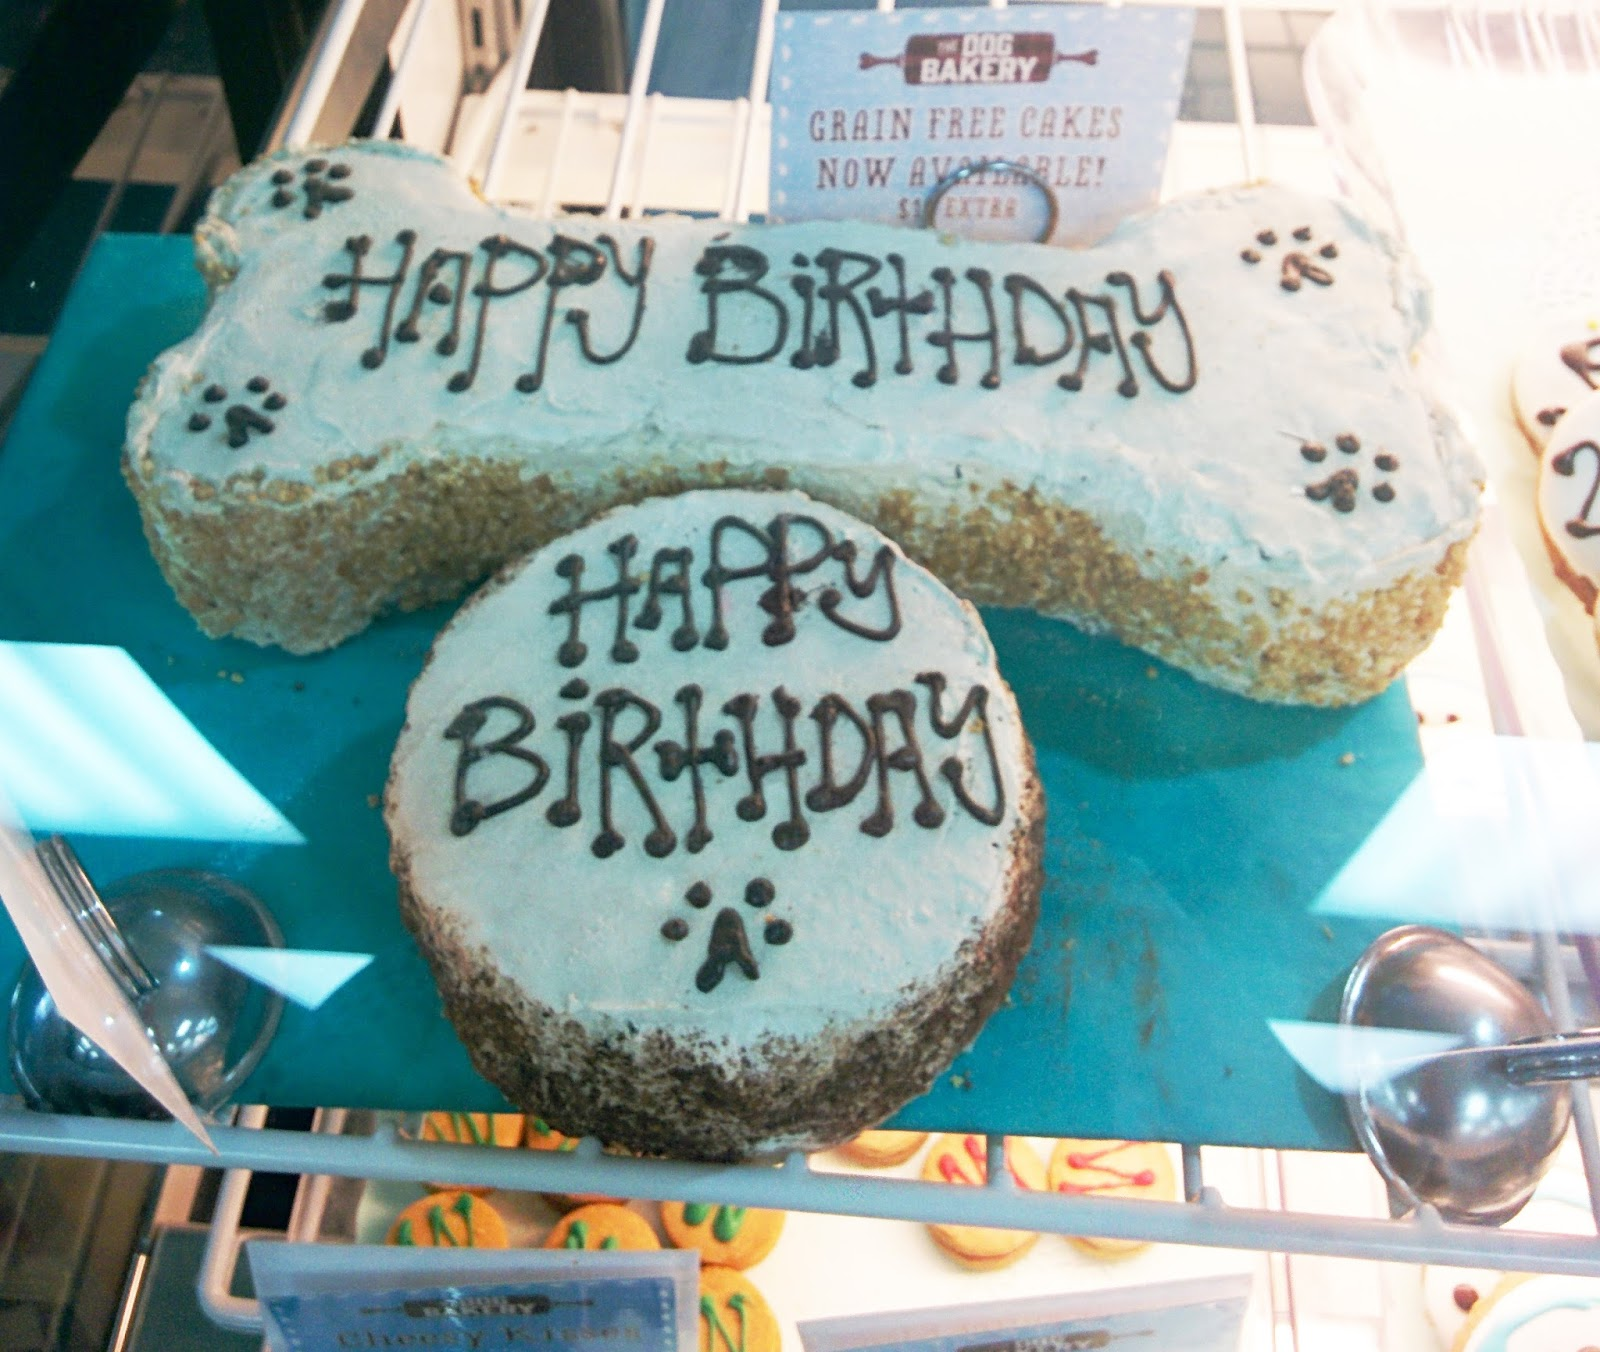 Dog Birthday Cakes And Cookies At The Bakery